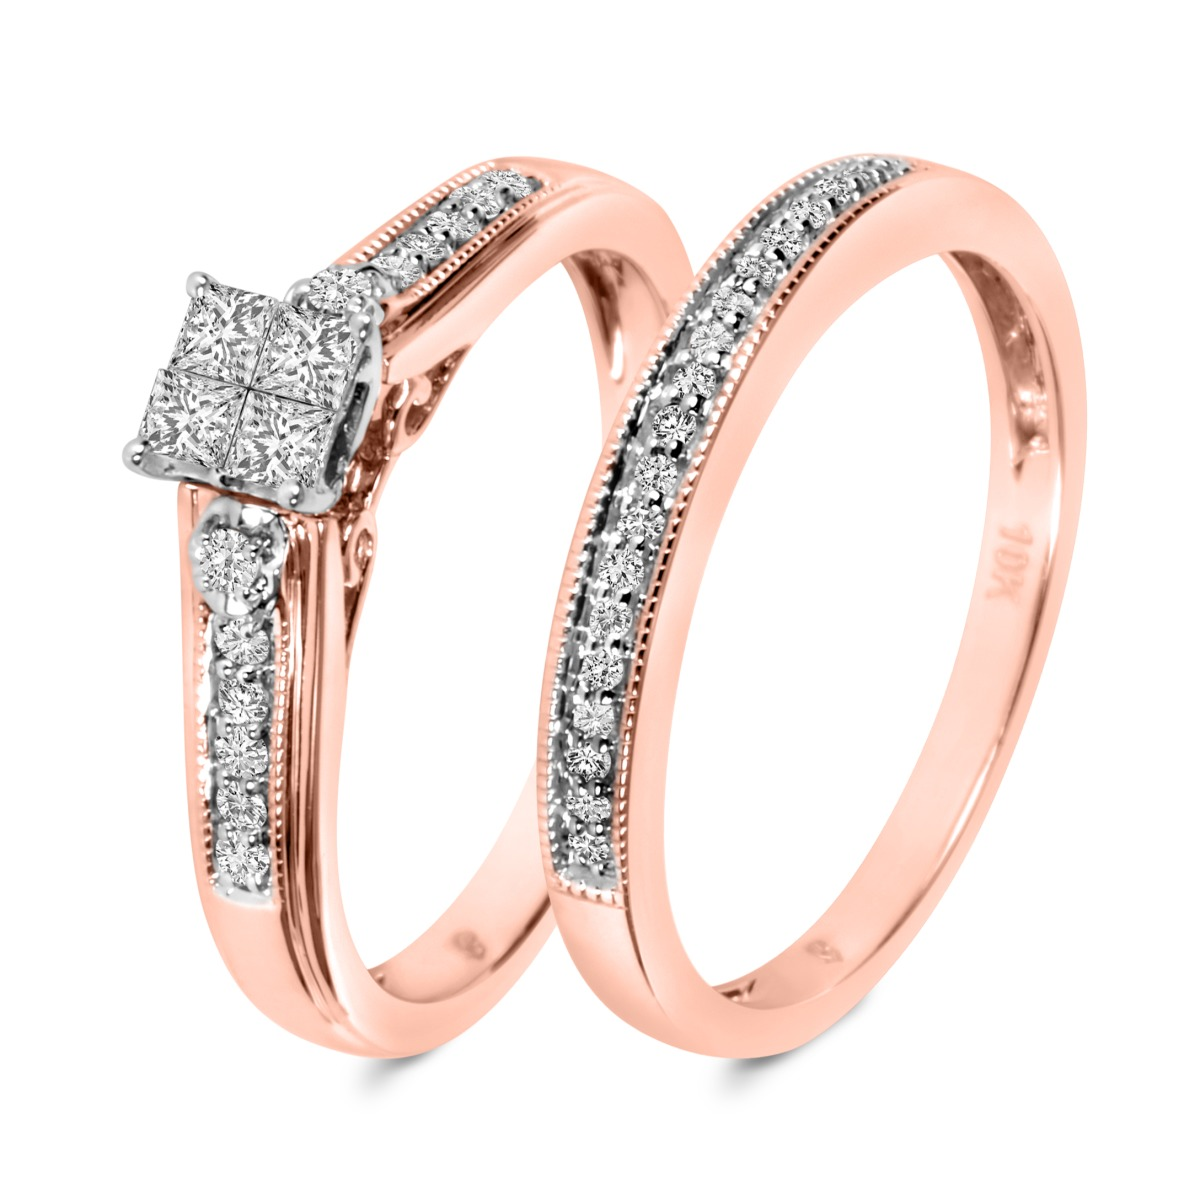 1/3 Carat T.W. Diamond Ladies' Bridal Wedding Ring Set 10K Rose Gold